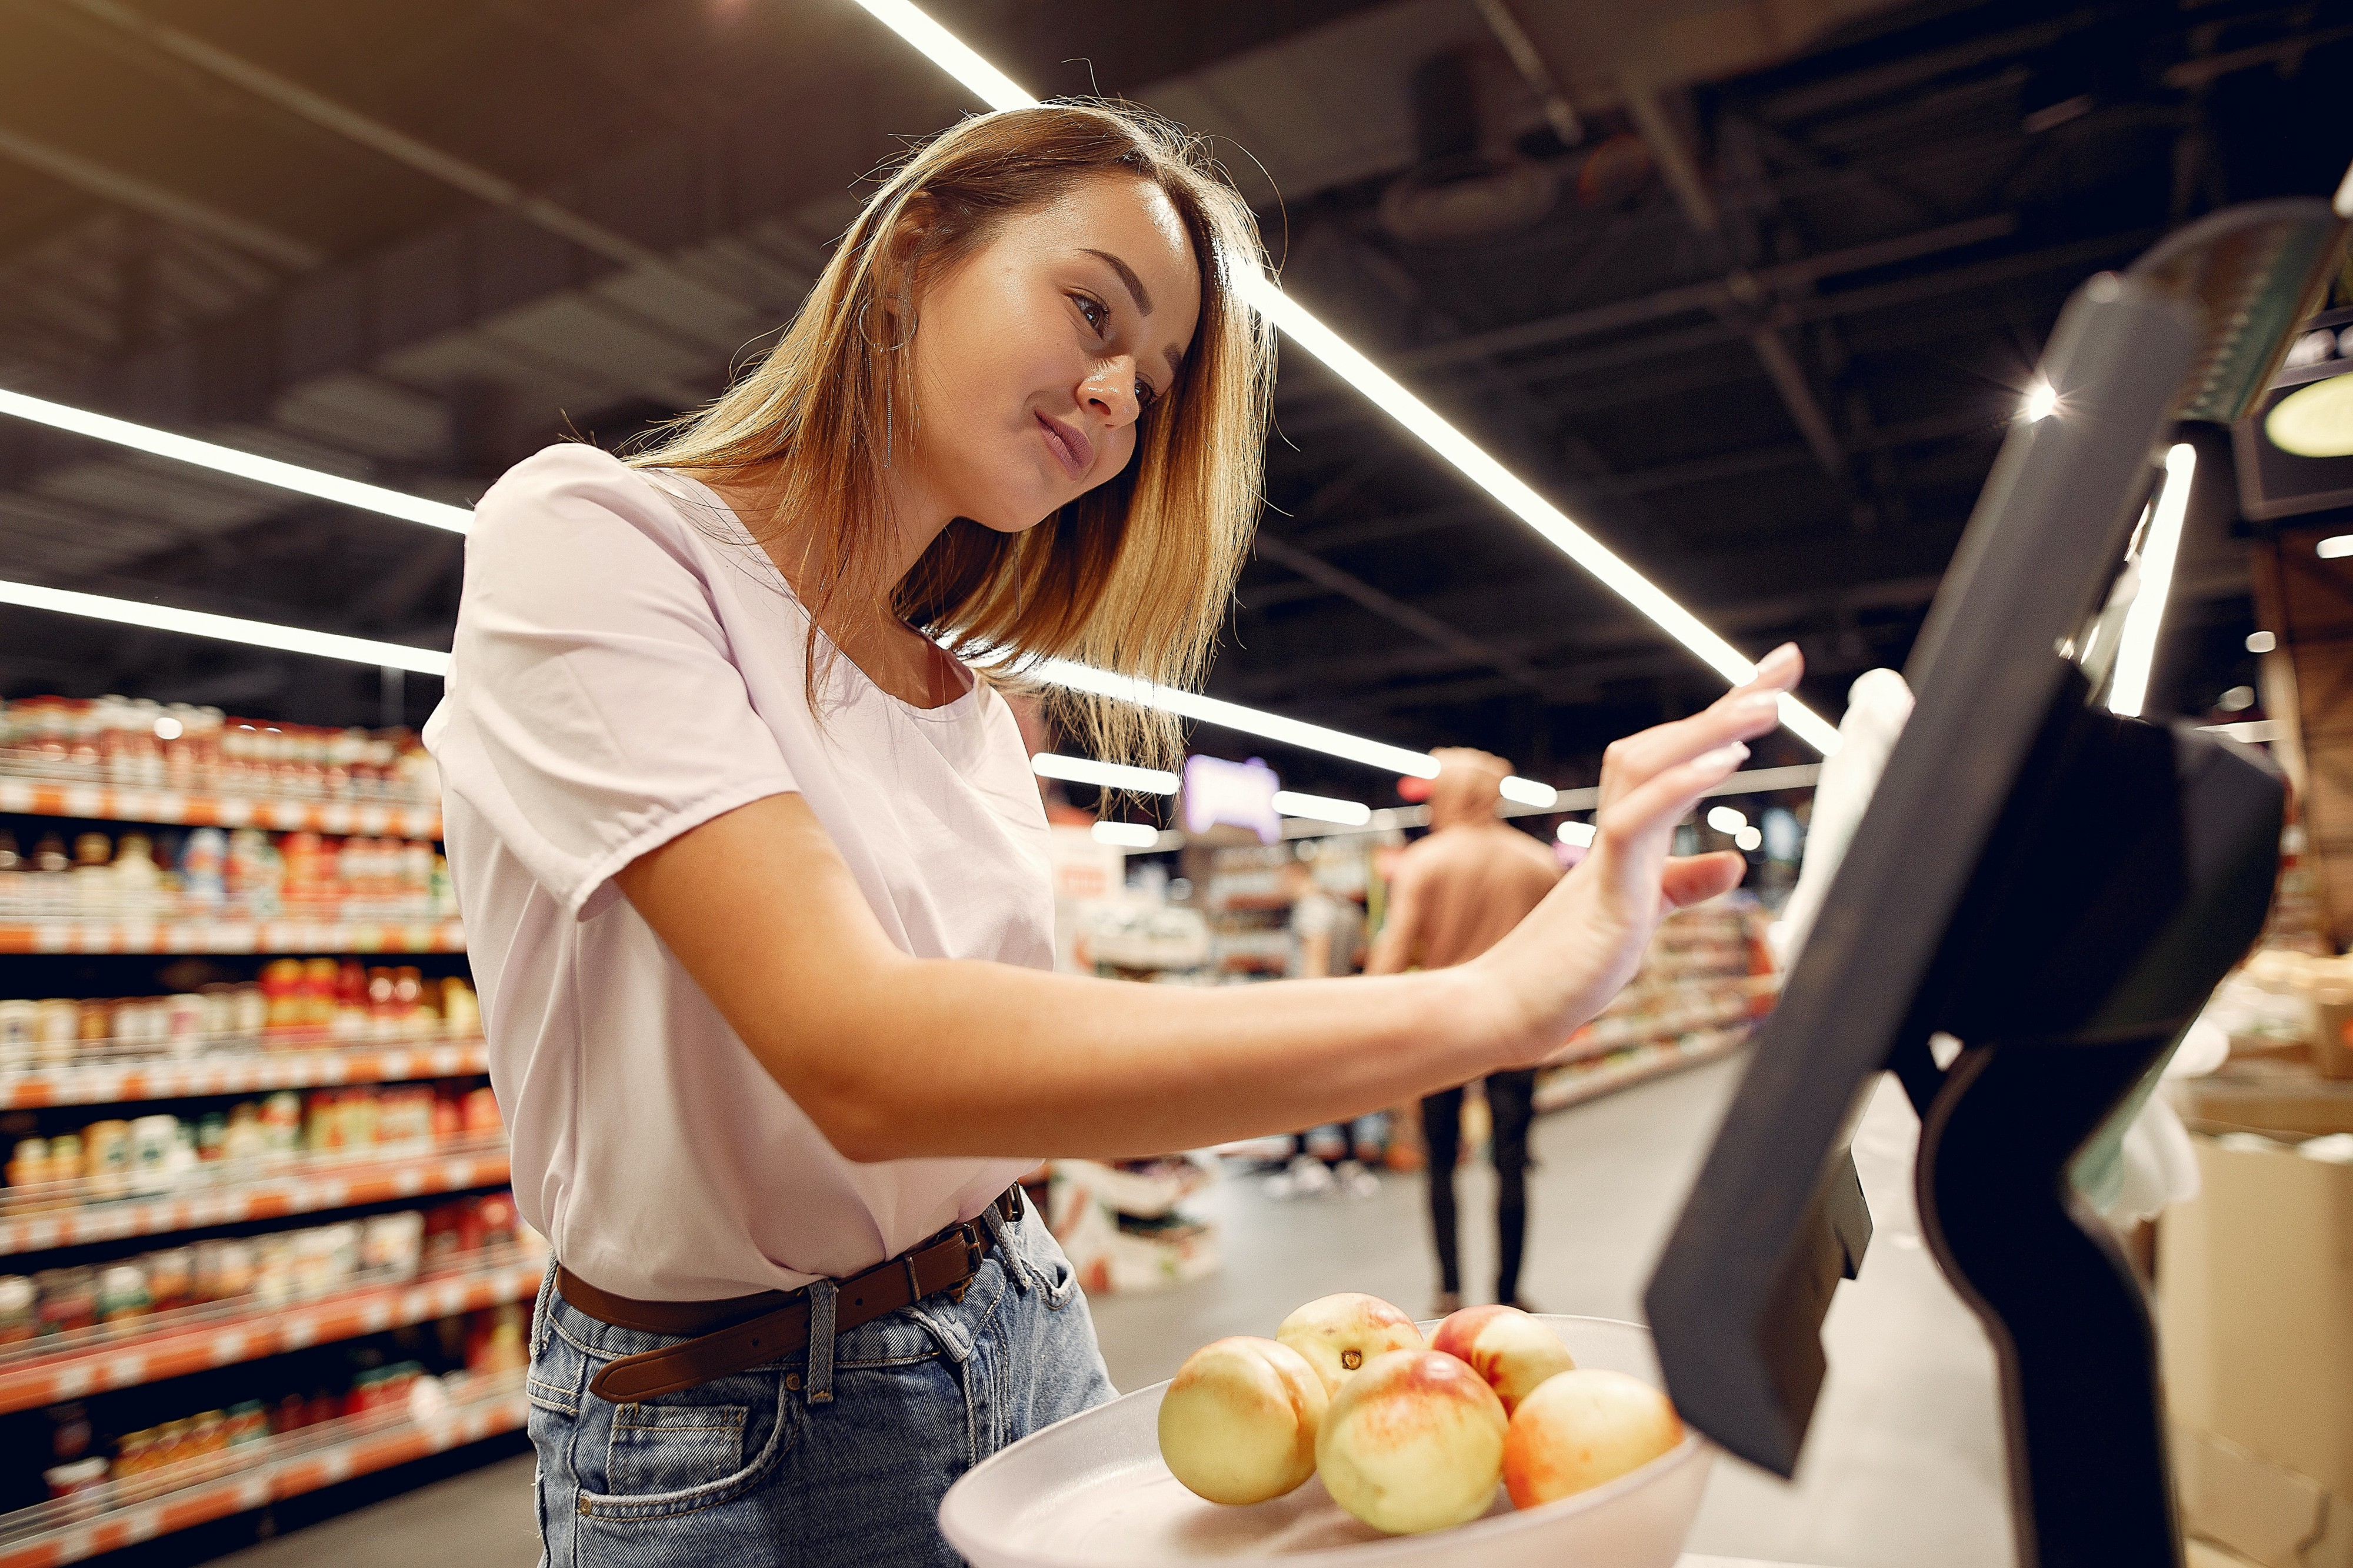 improving customer shopping experience with technology